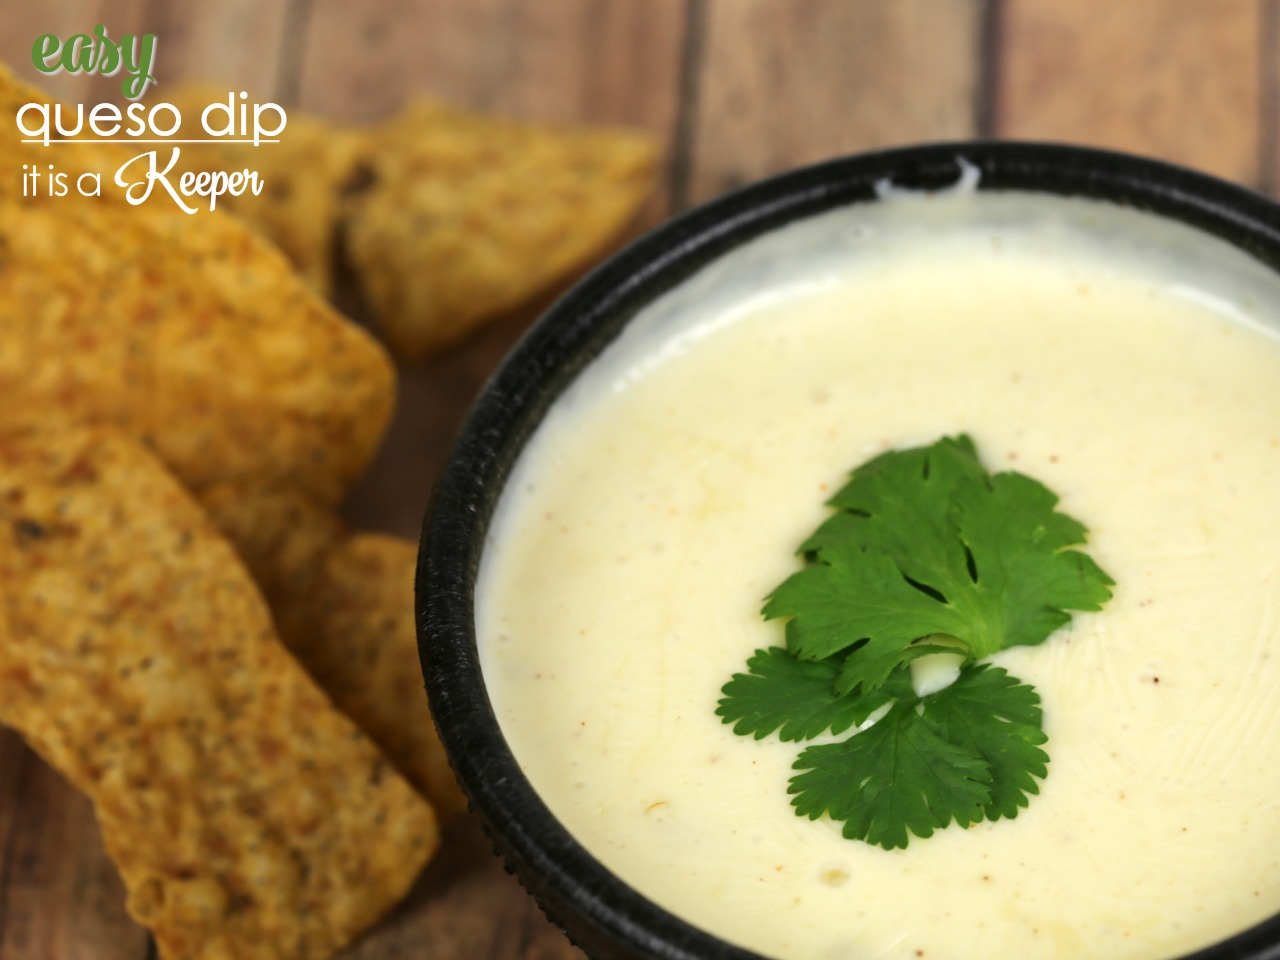 Easy Queso Dip - This restaurant style dip is easy to make and super creamy